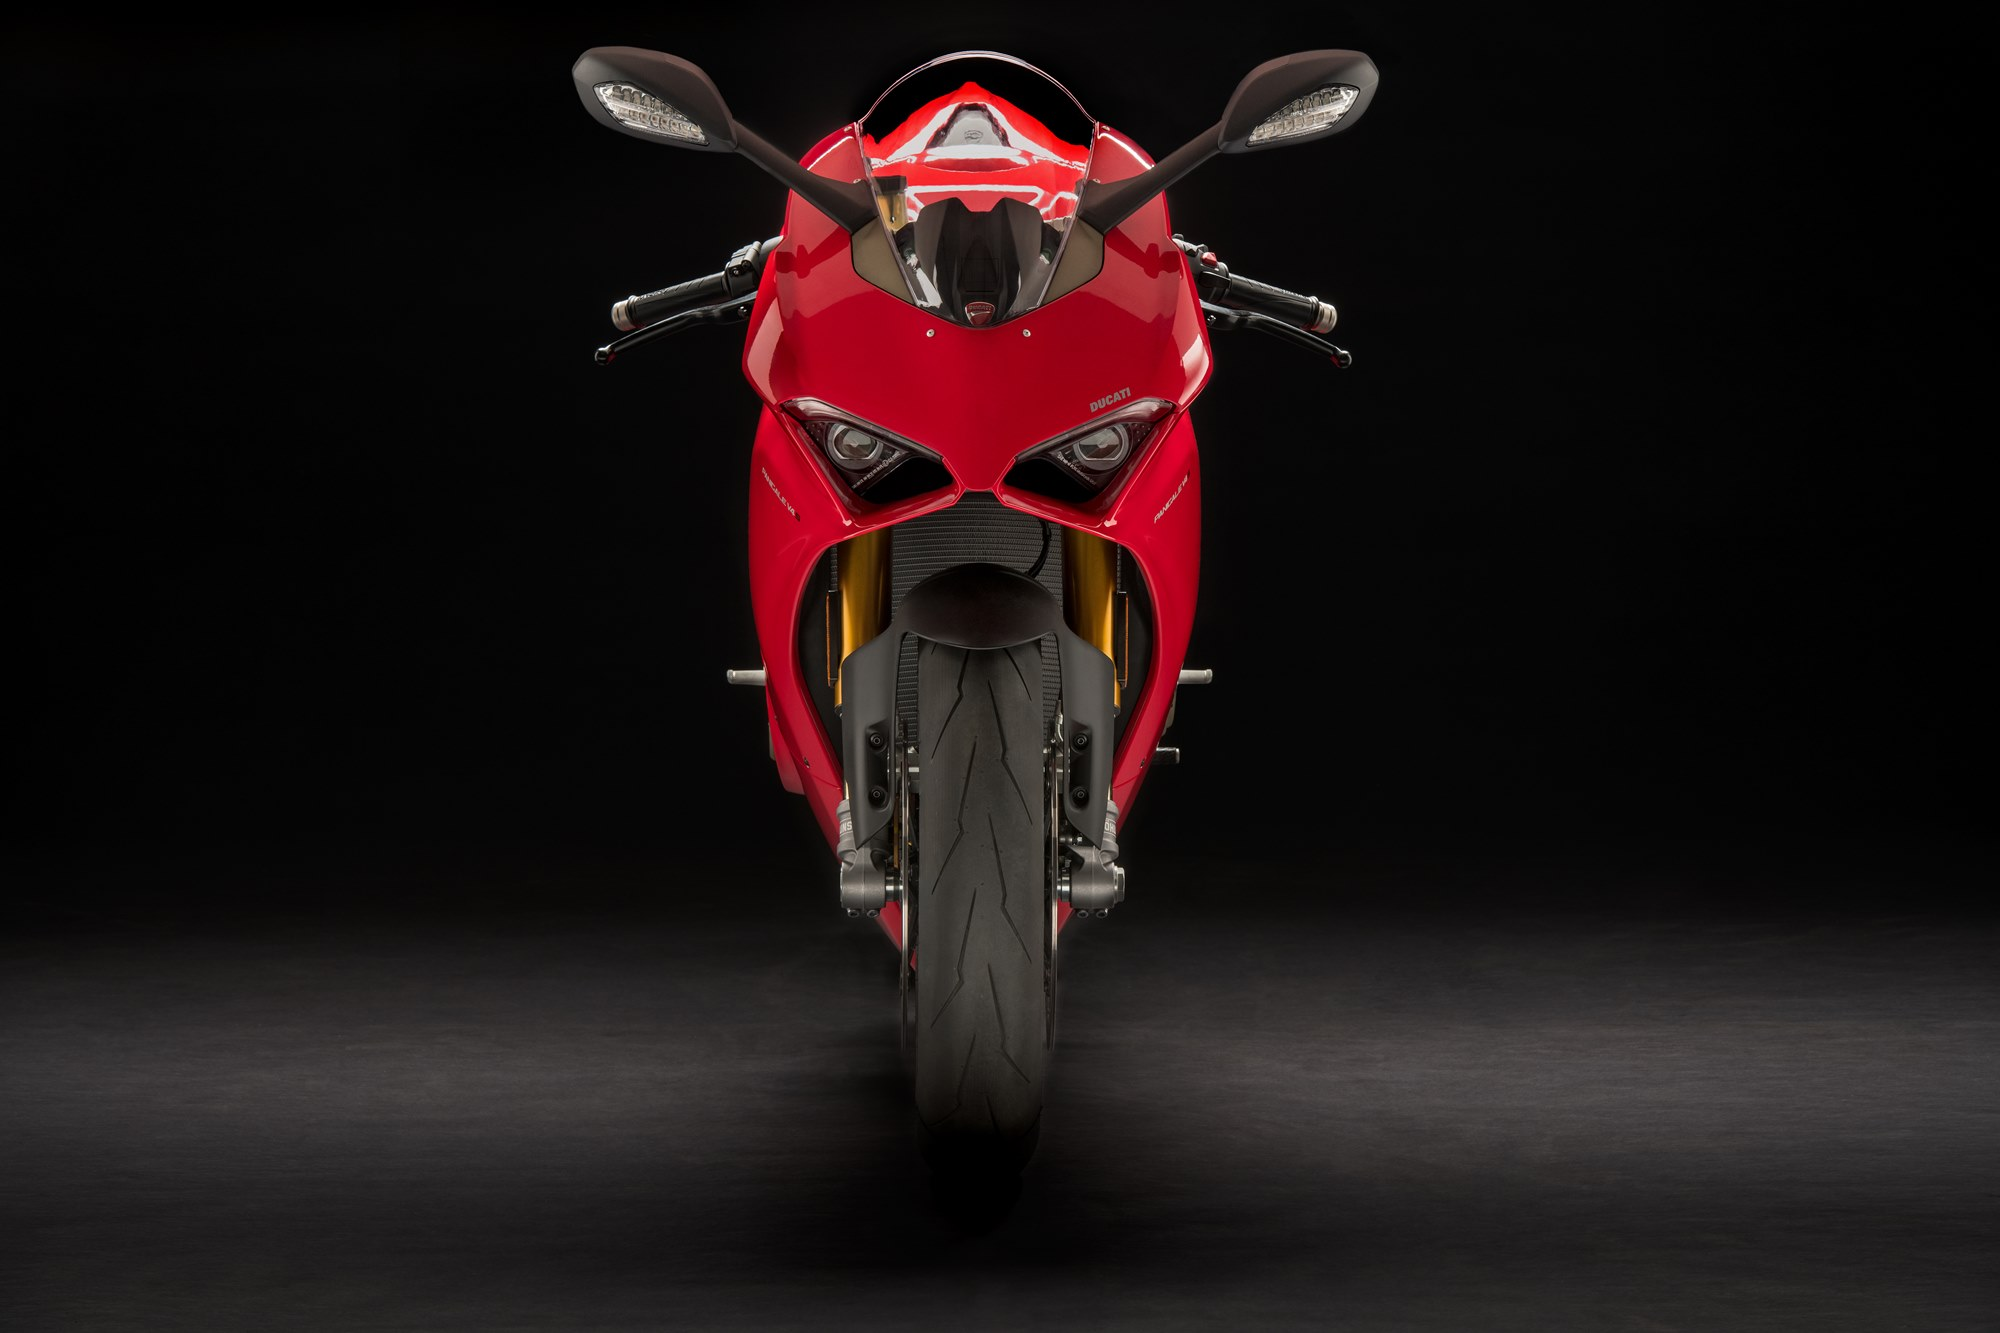 Ducati Buyers Guide